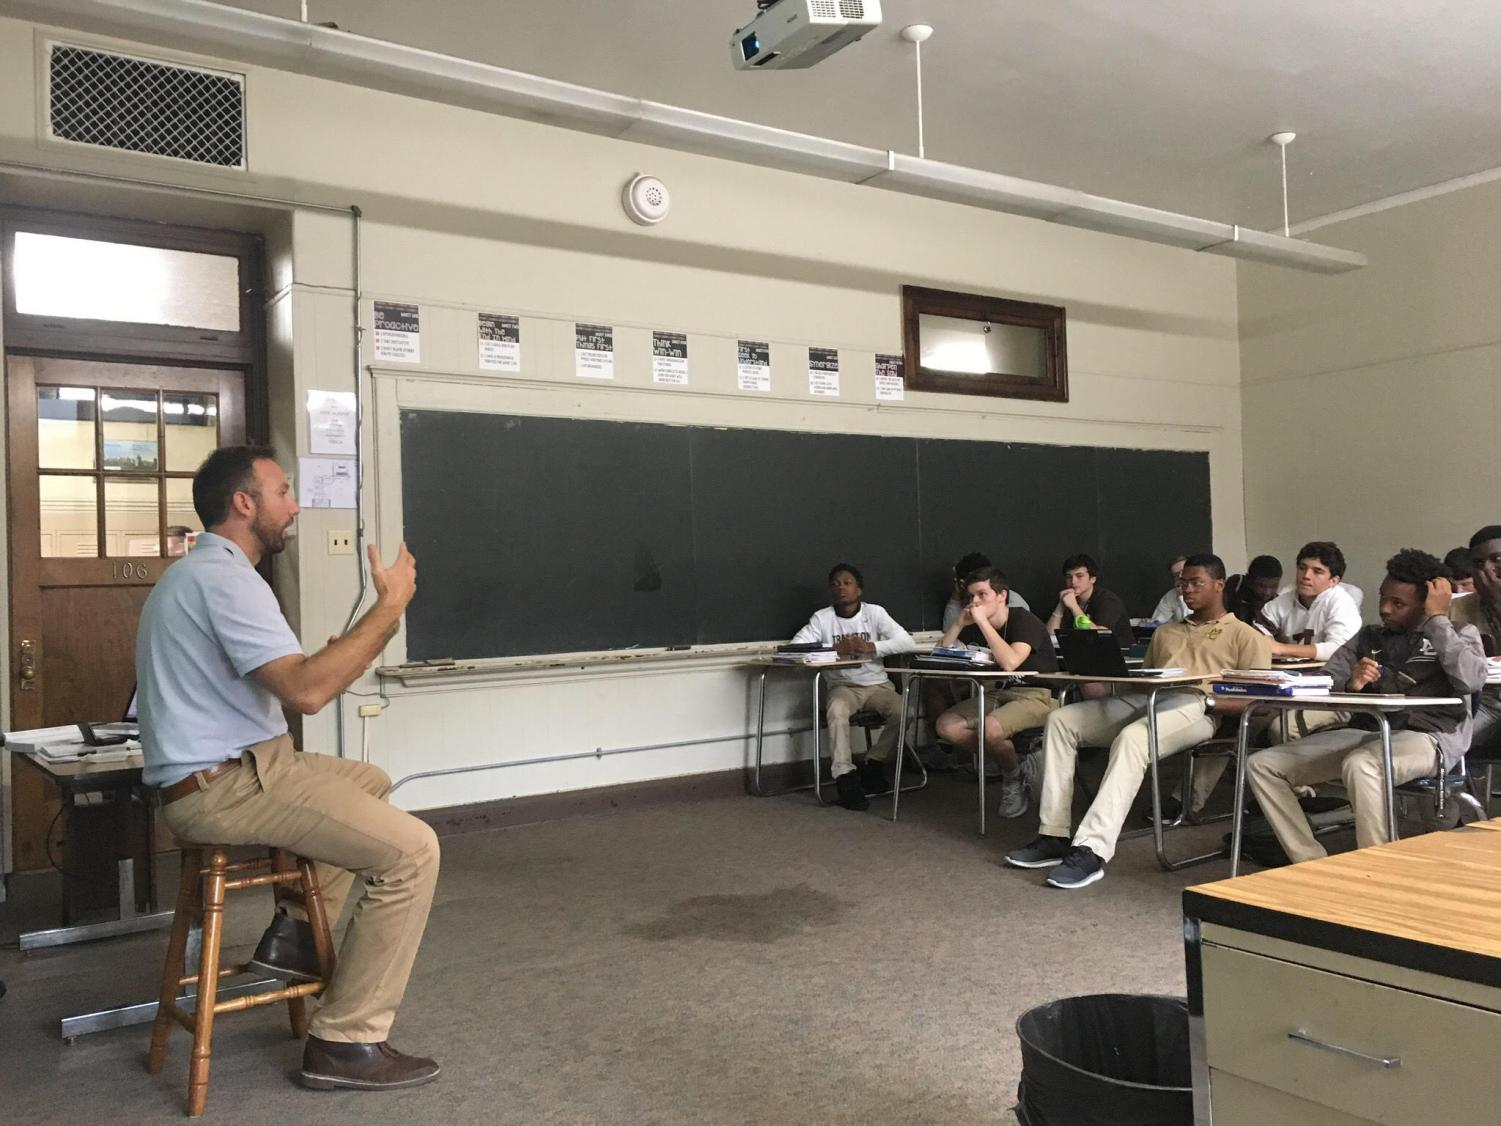 Mr. Scott Sortal recently announced the formation of a Finance Club for Mount Carmel students.